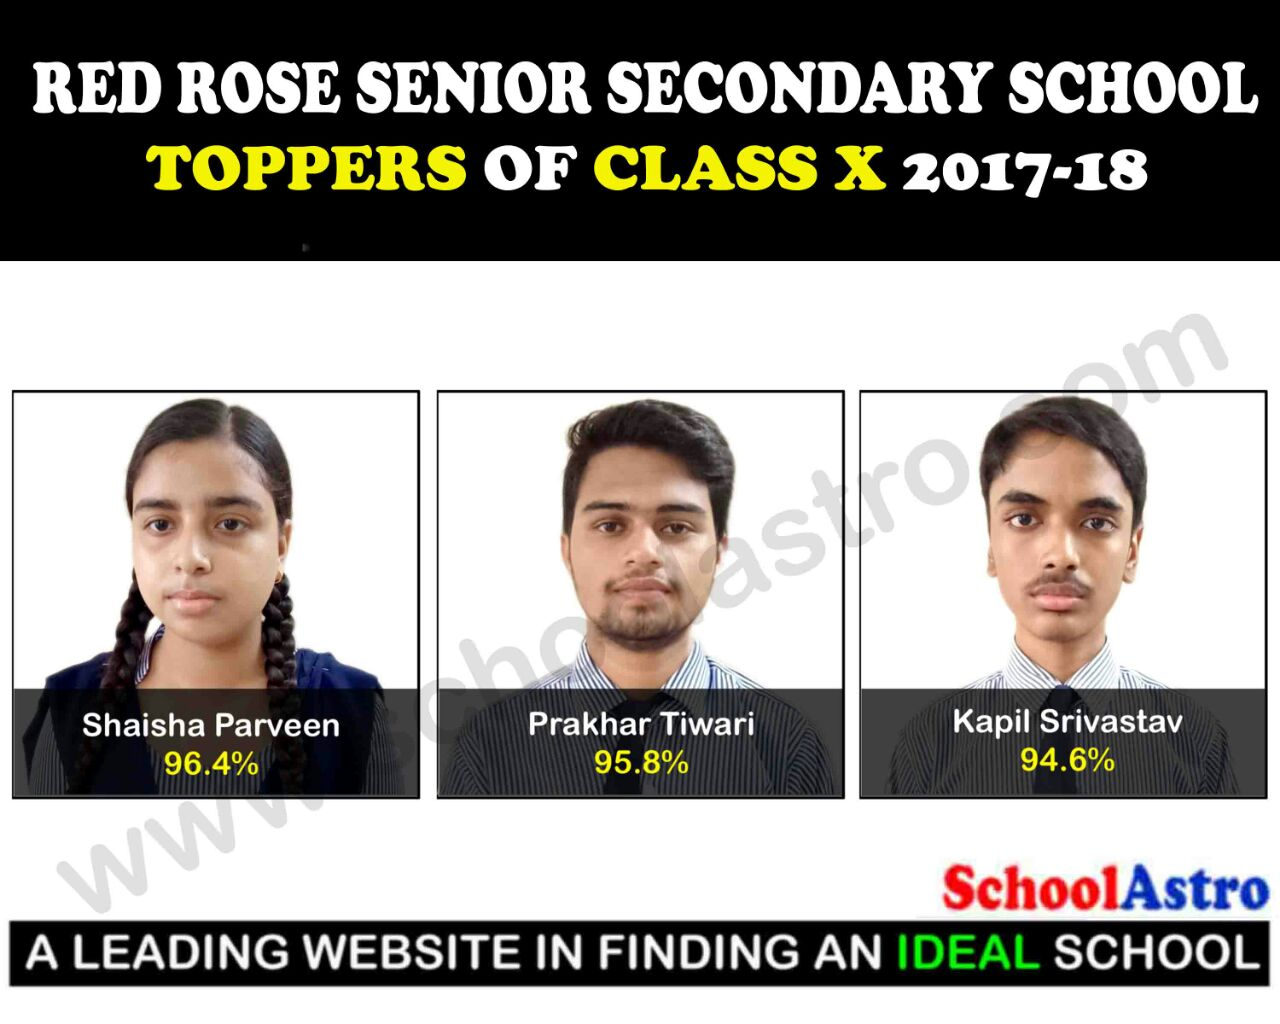 SUCCESS STORY OF RED ROSE SENIOR SECONDARY SCHOOL